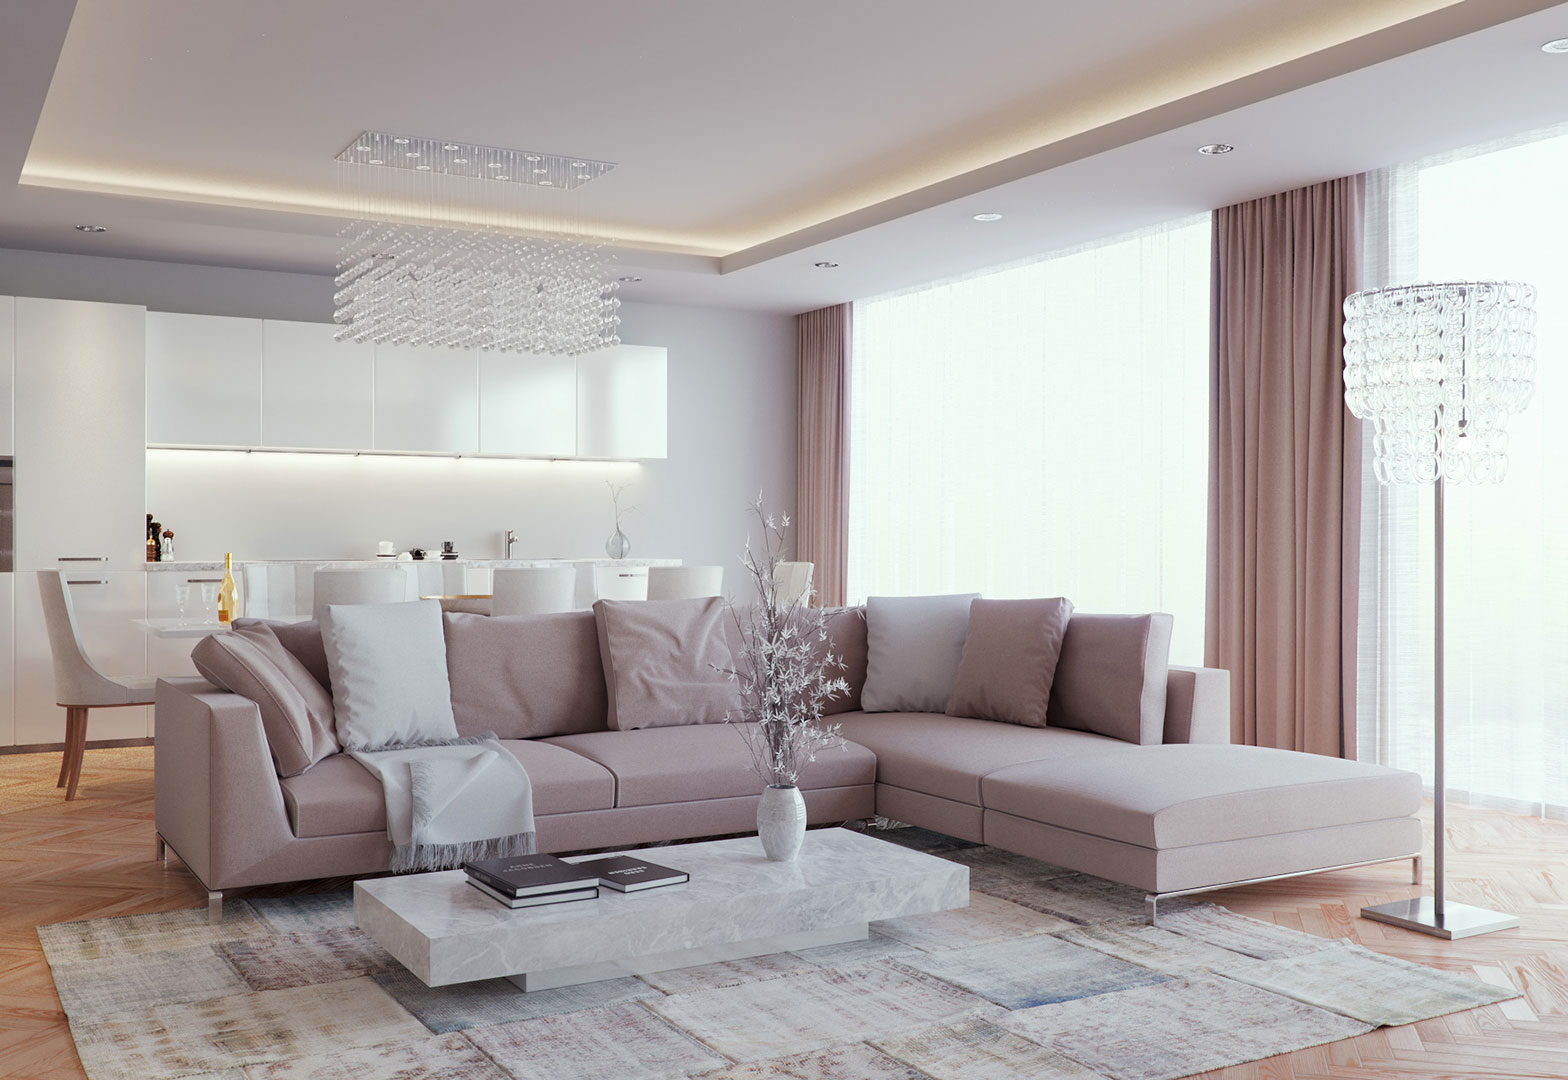 Best Home Decoration Design Wallpapers Gallery